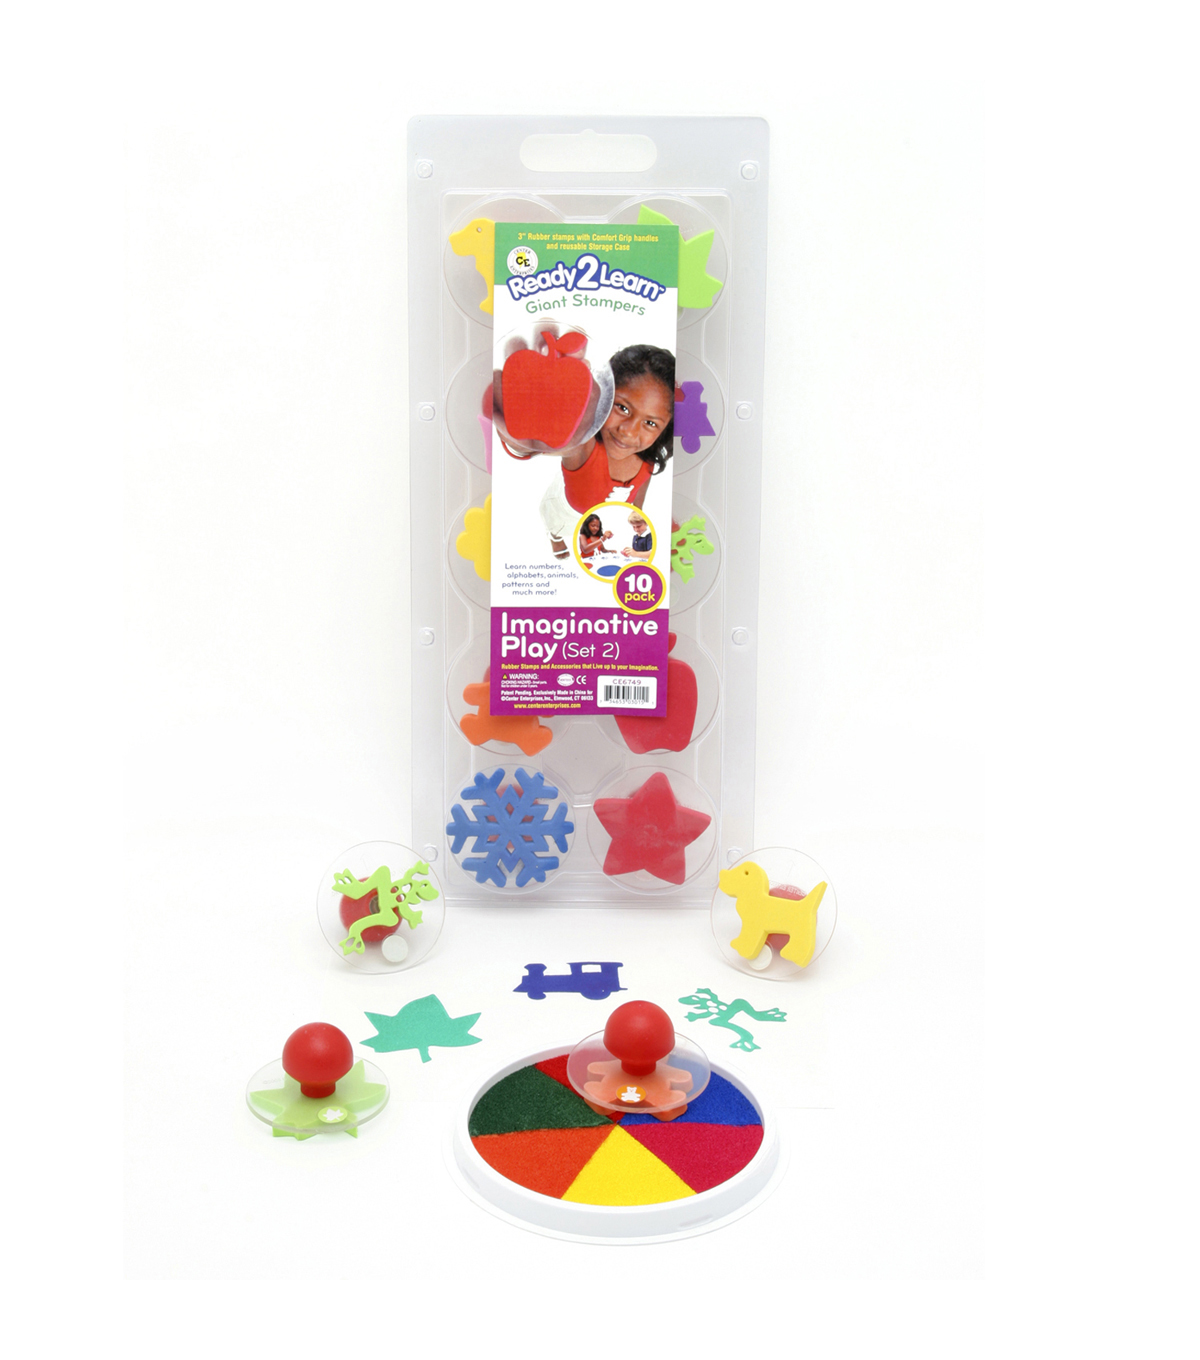 Ready2Learn Giant Stampers, Imaginative Play Set 2, Set of 10